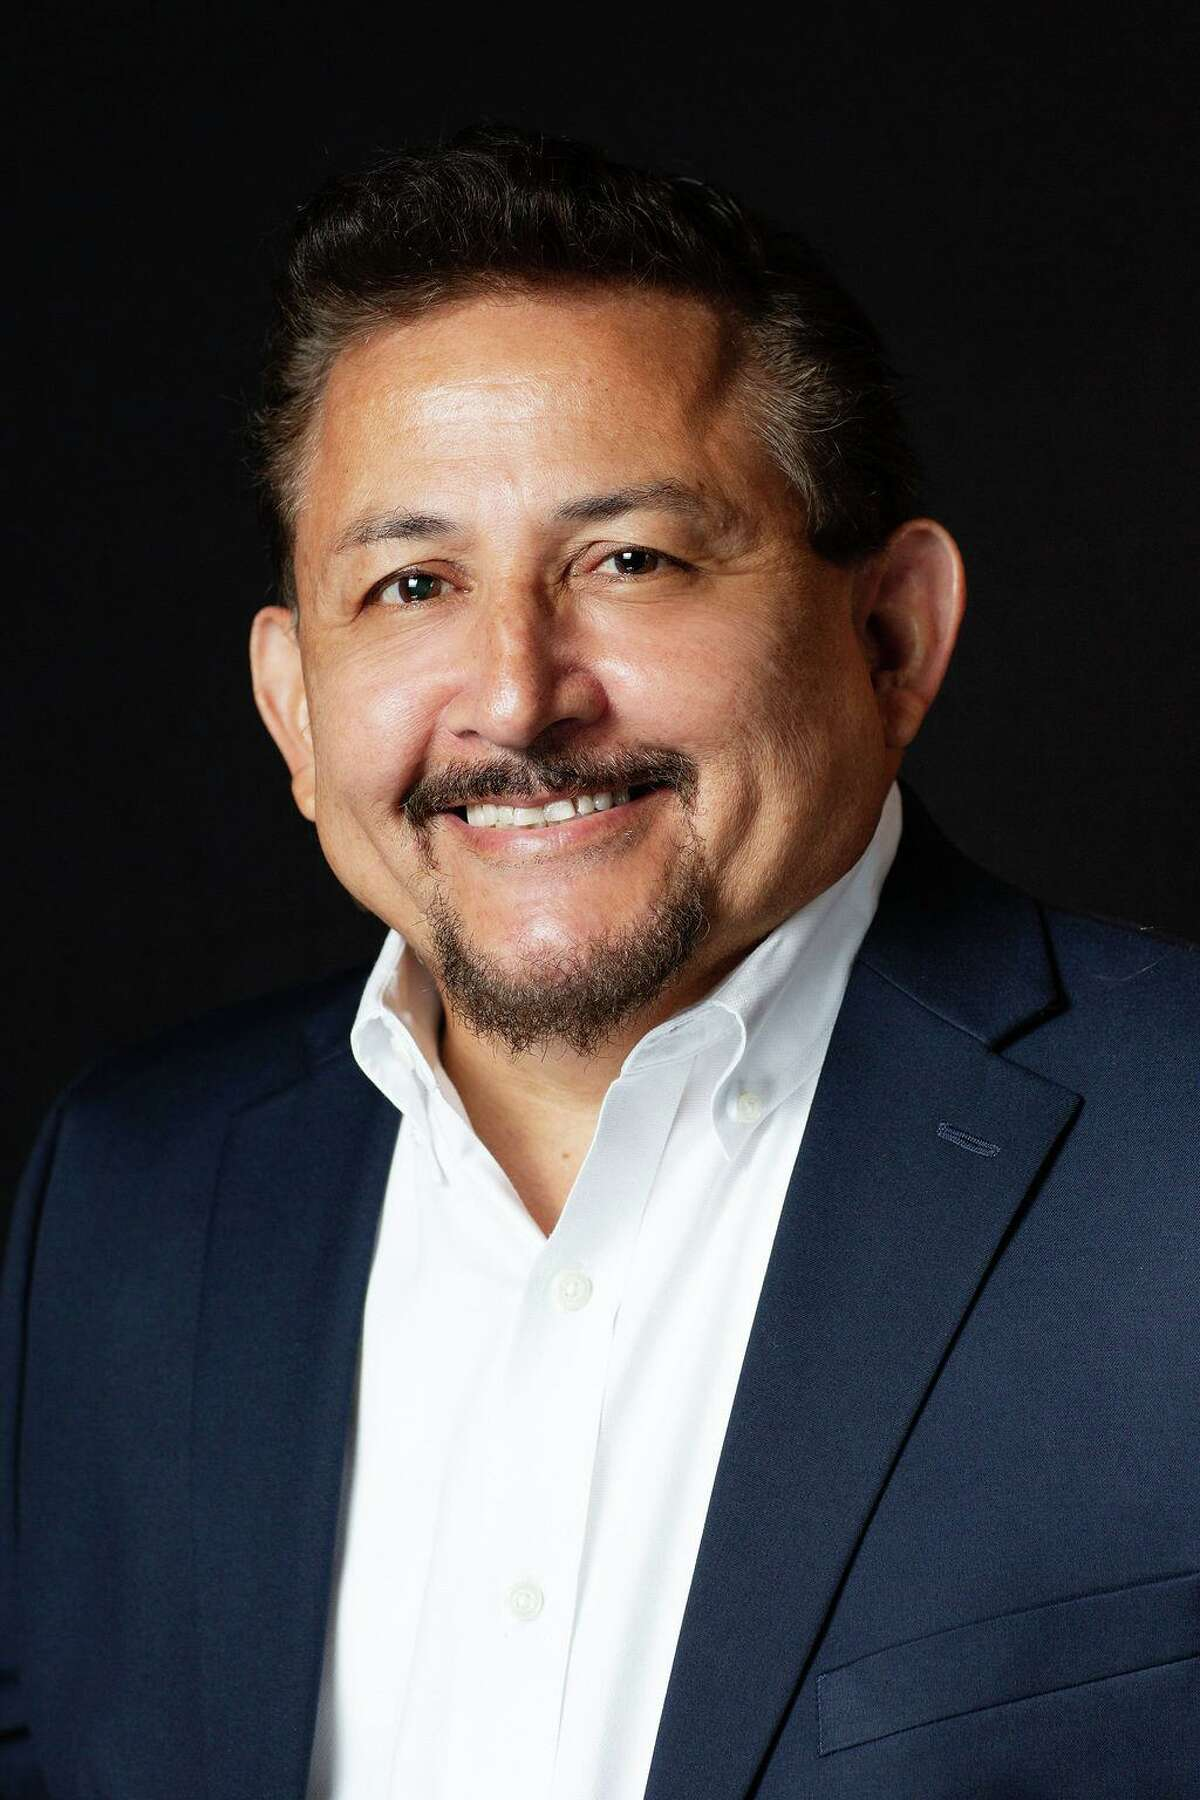 Incumbent Art Murillo is running unopposed for the District Four seat on the Lone Star College Board of Trustees in the upcoming Nov. 3, 2020 election.